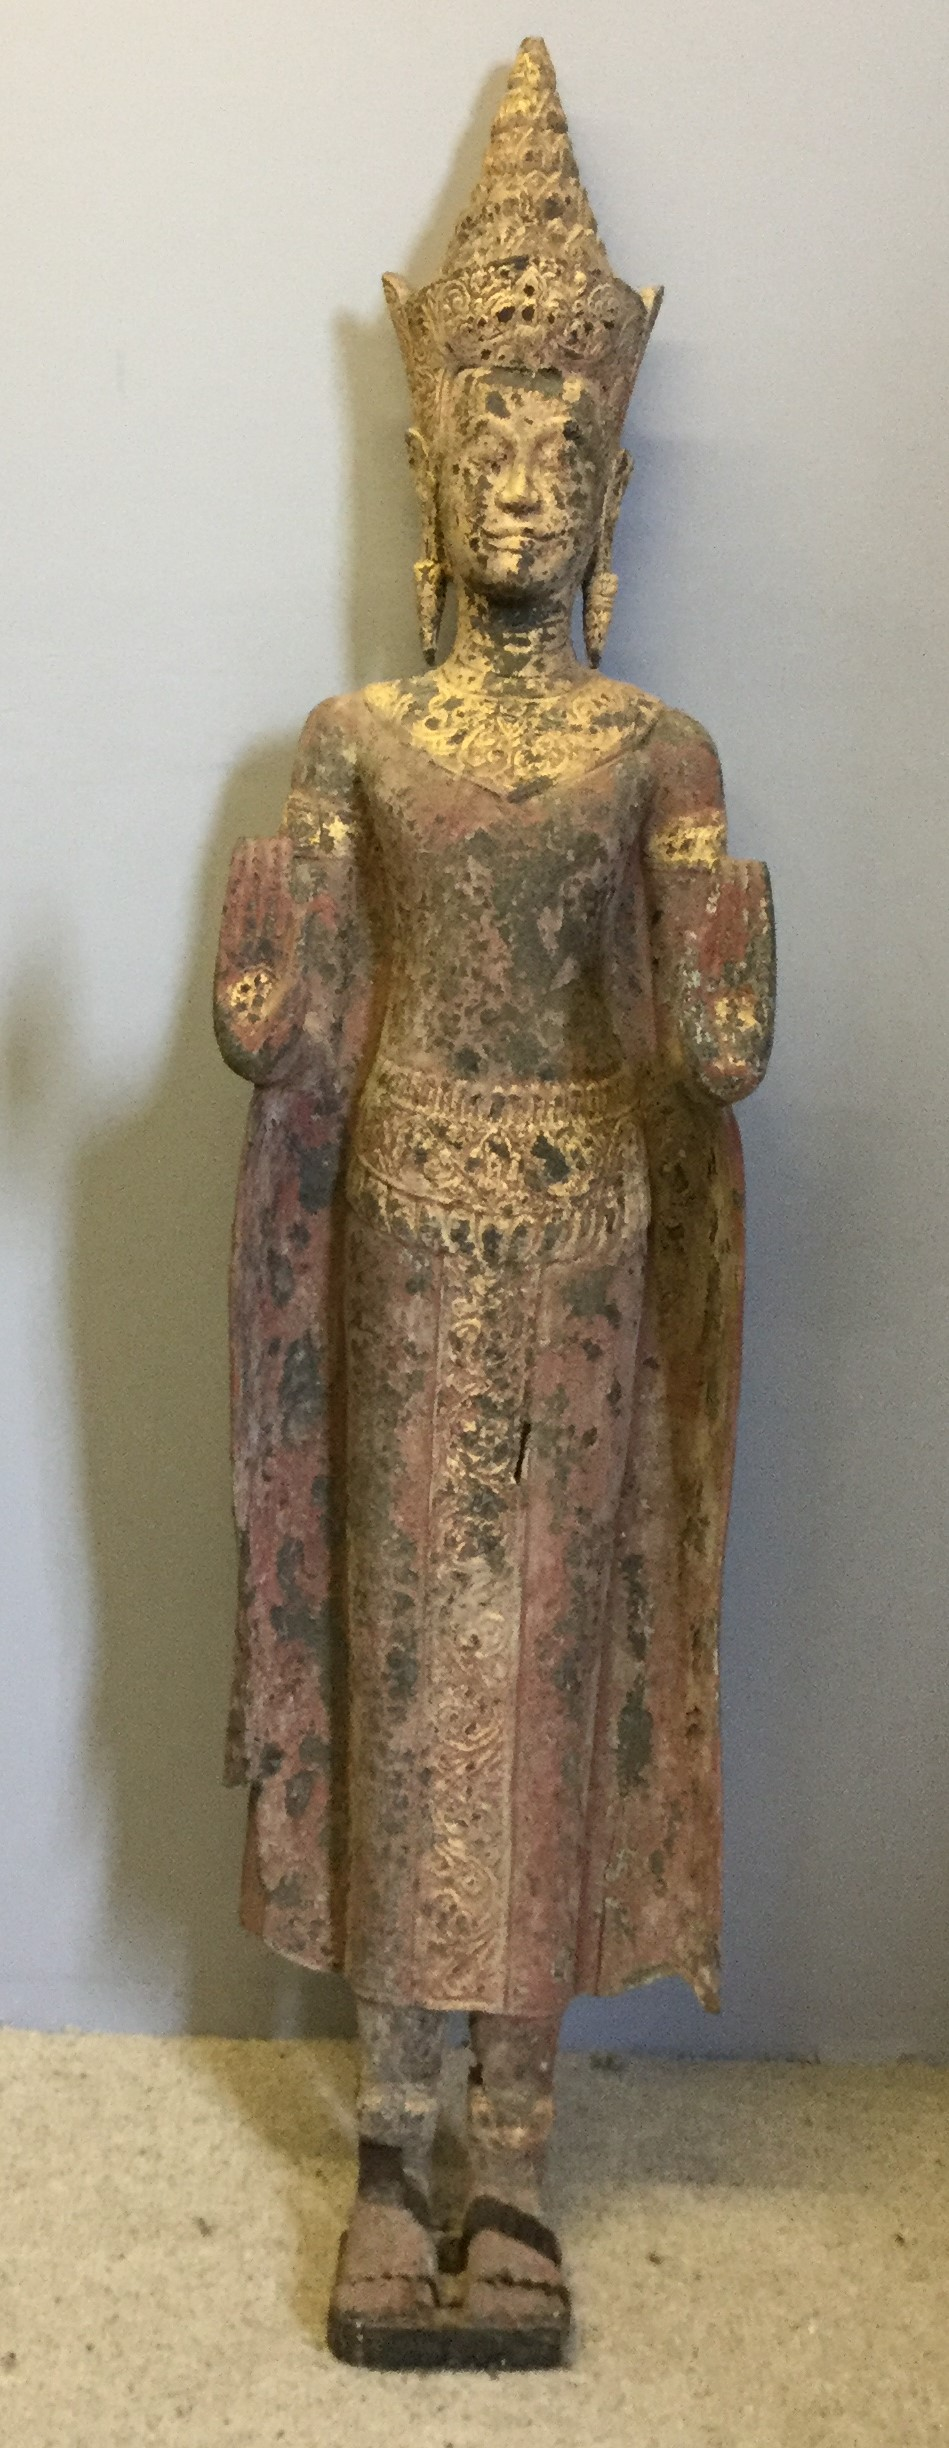 Lot 207 - A large Cambodian polychrome decorated carved wood standing Buddha 168 cm high.